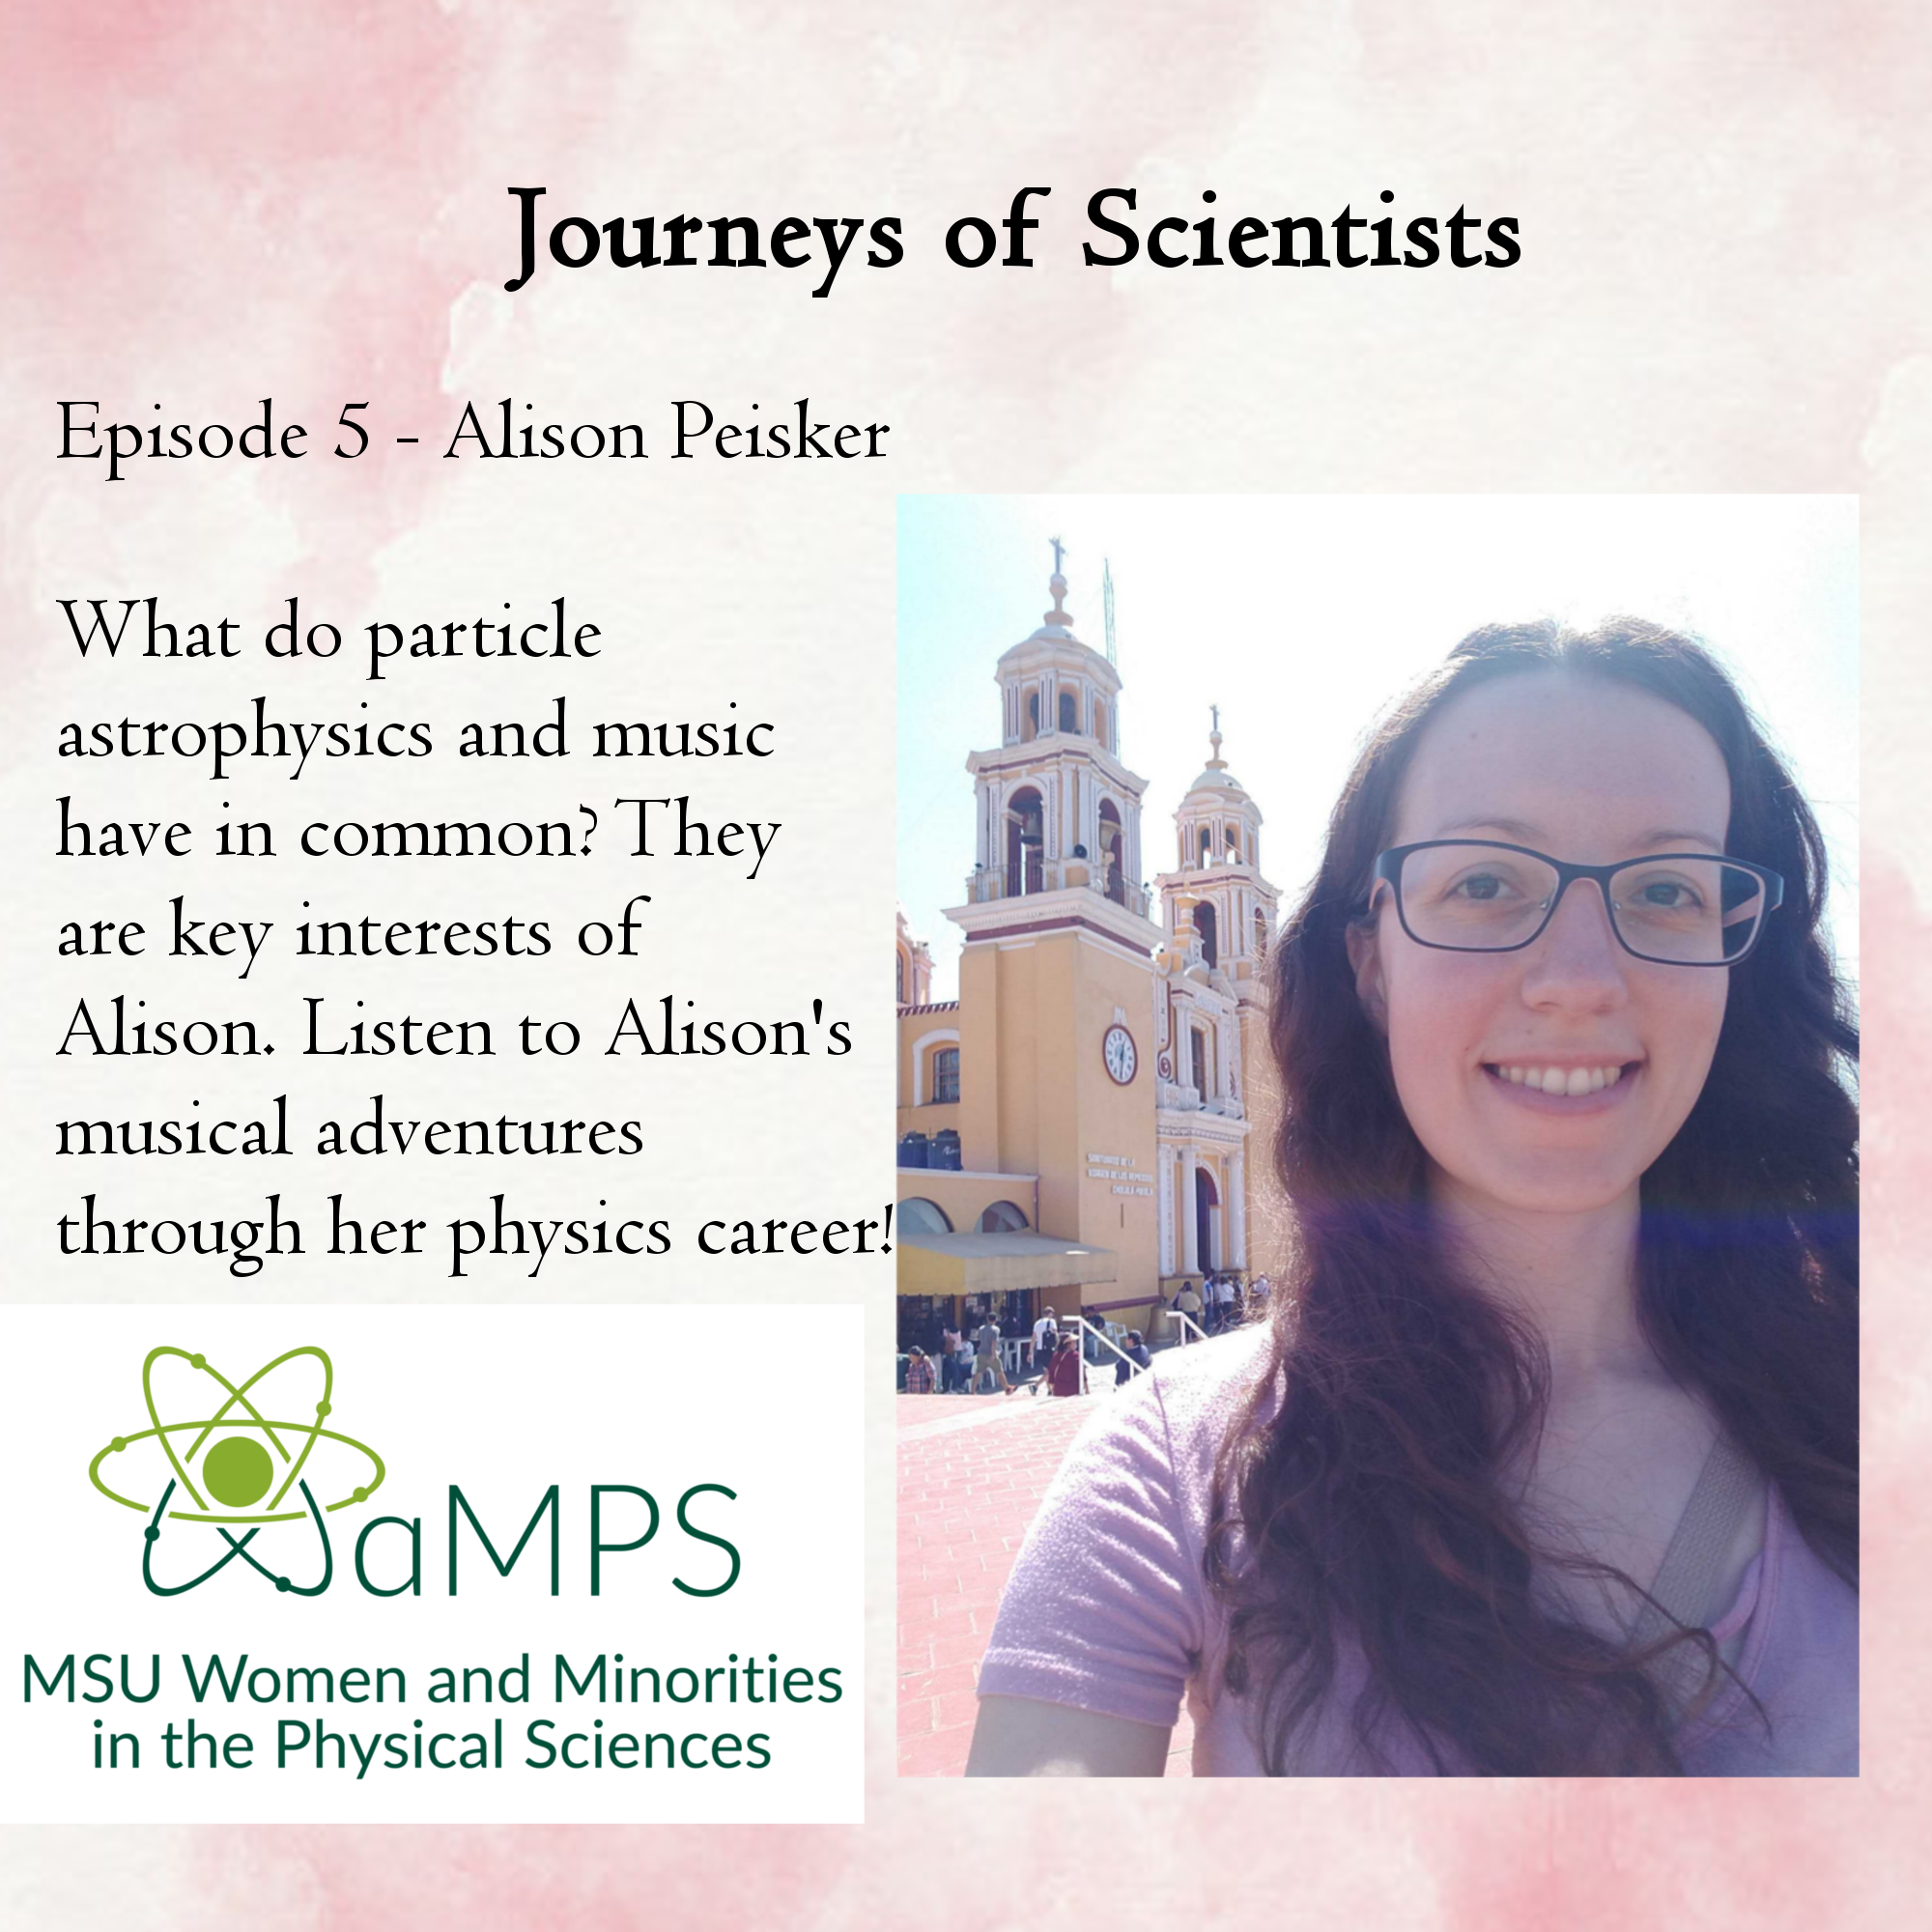 Alison Peisker is a 5th year grad student studying particle astrophysics. She works on a gamma ray observatory, taking data from a neutrino observatory and looking for coincidences in gamma rays from already detected neutrinos. We'll learn about Alison's interests which include music and knitting. Alison will also talk about her experiences adapting and growing through grad school, and how that has influenced some of her career goals.